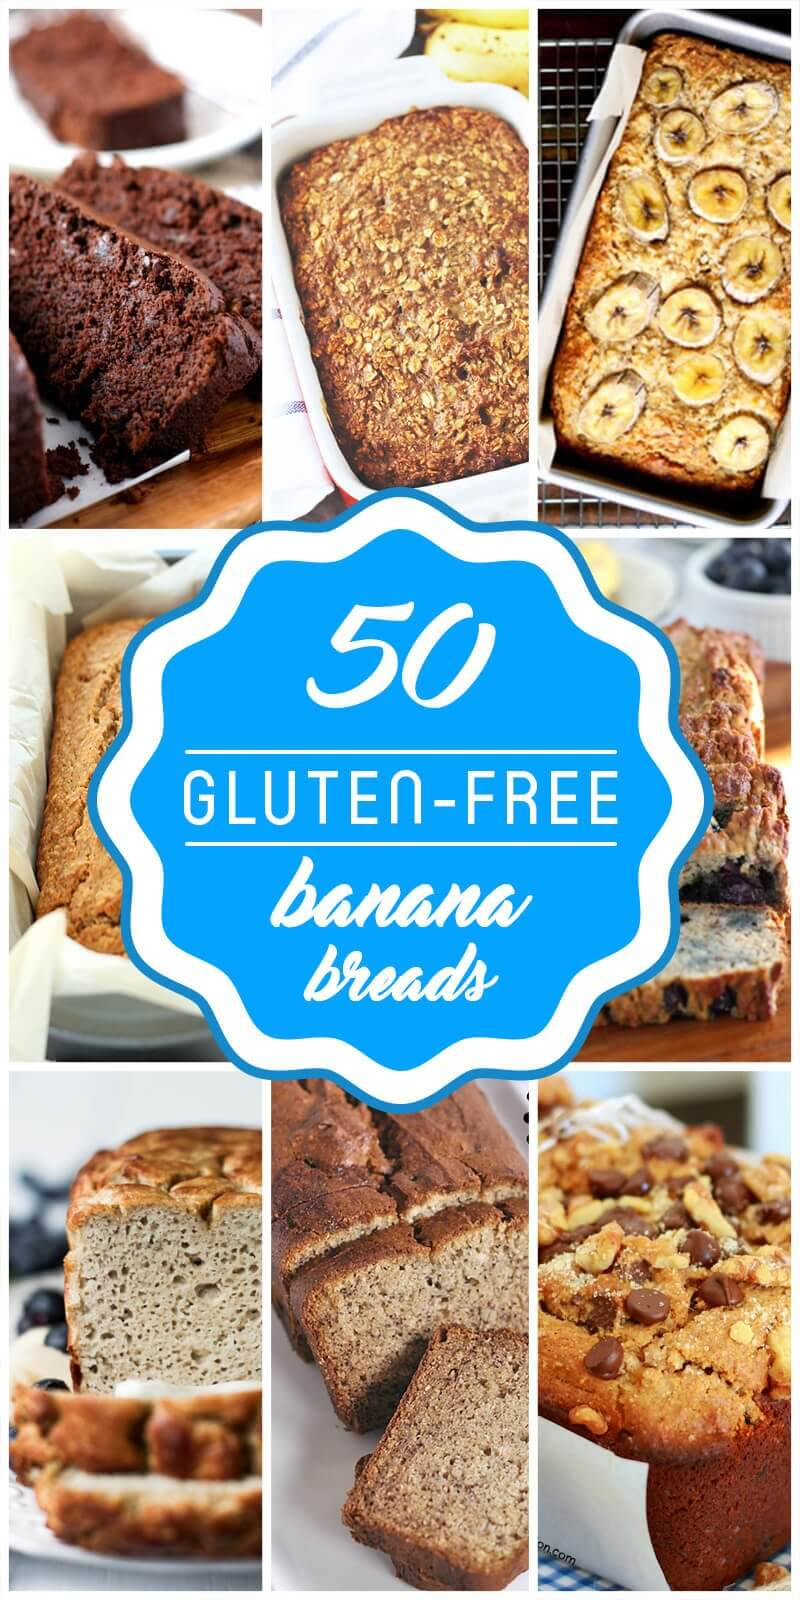 Gluten-Free Banana Bread Recipes